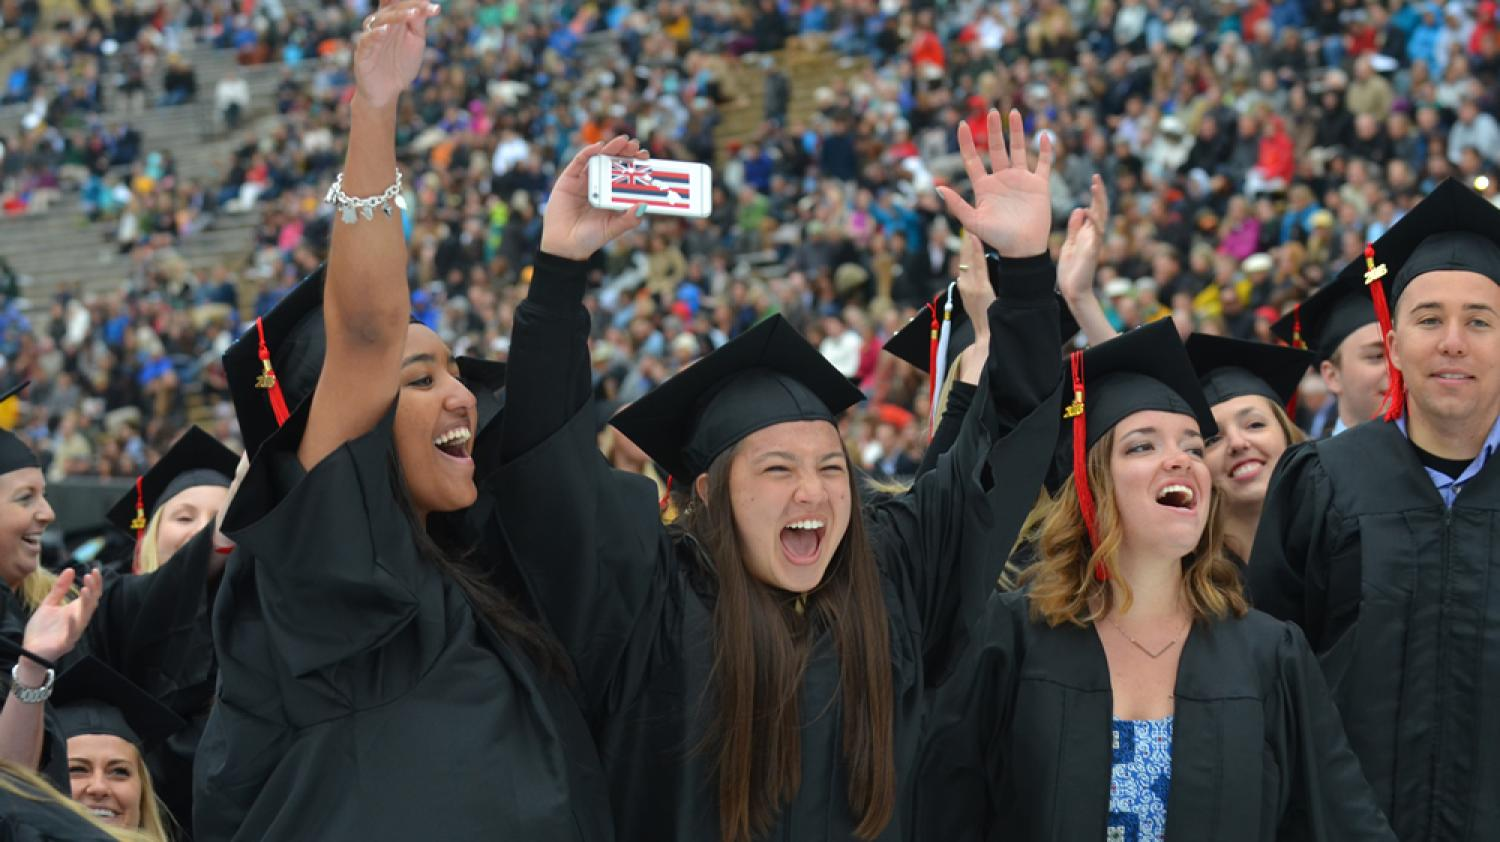 Graduates cheering at commencement ceremony